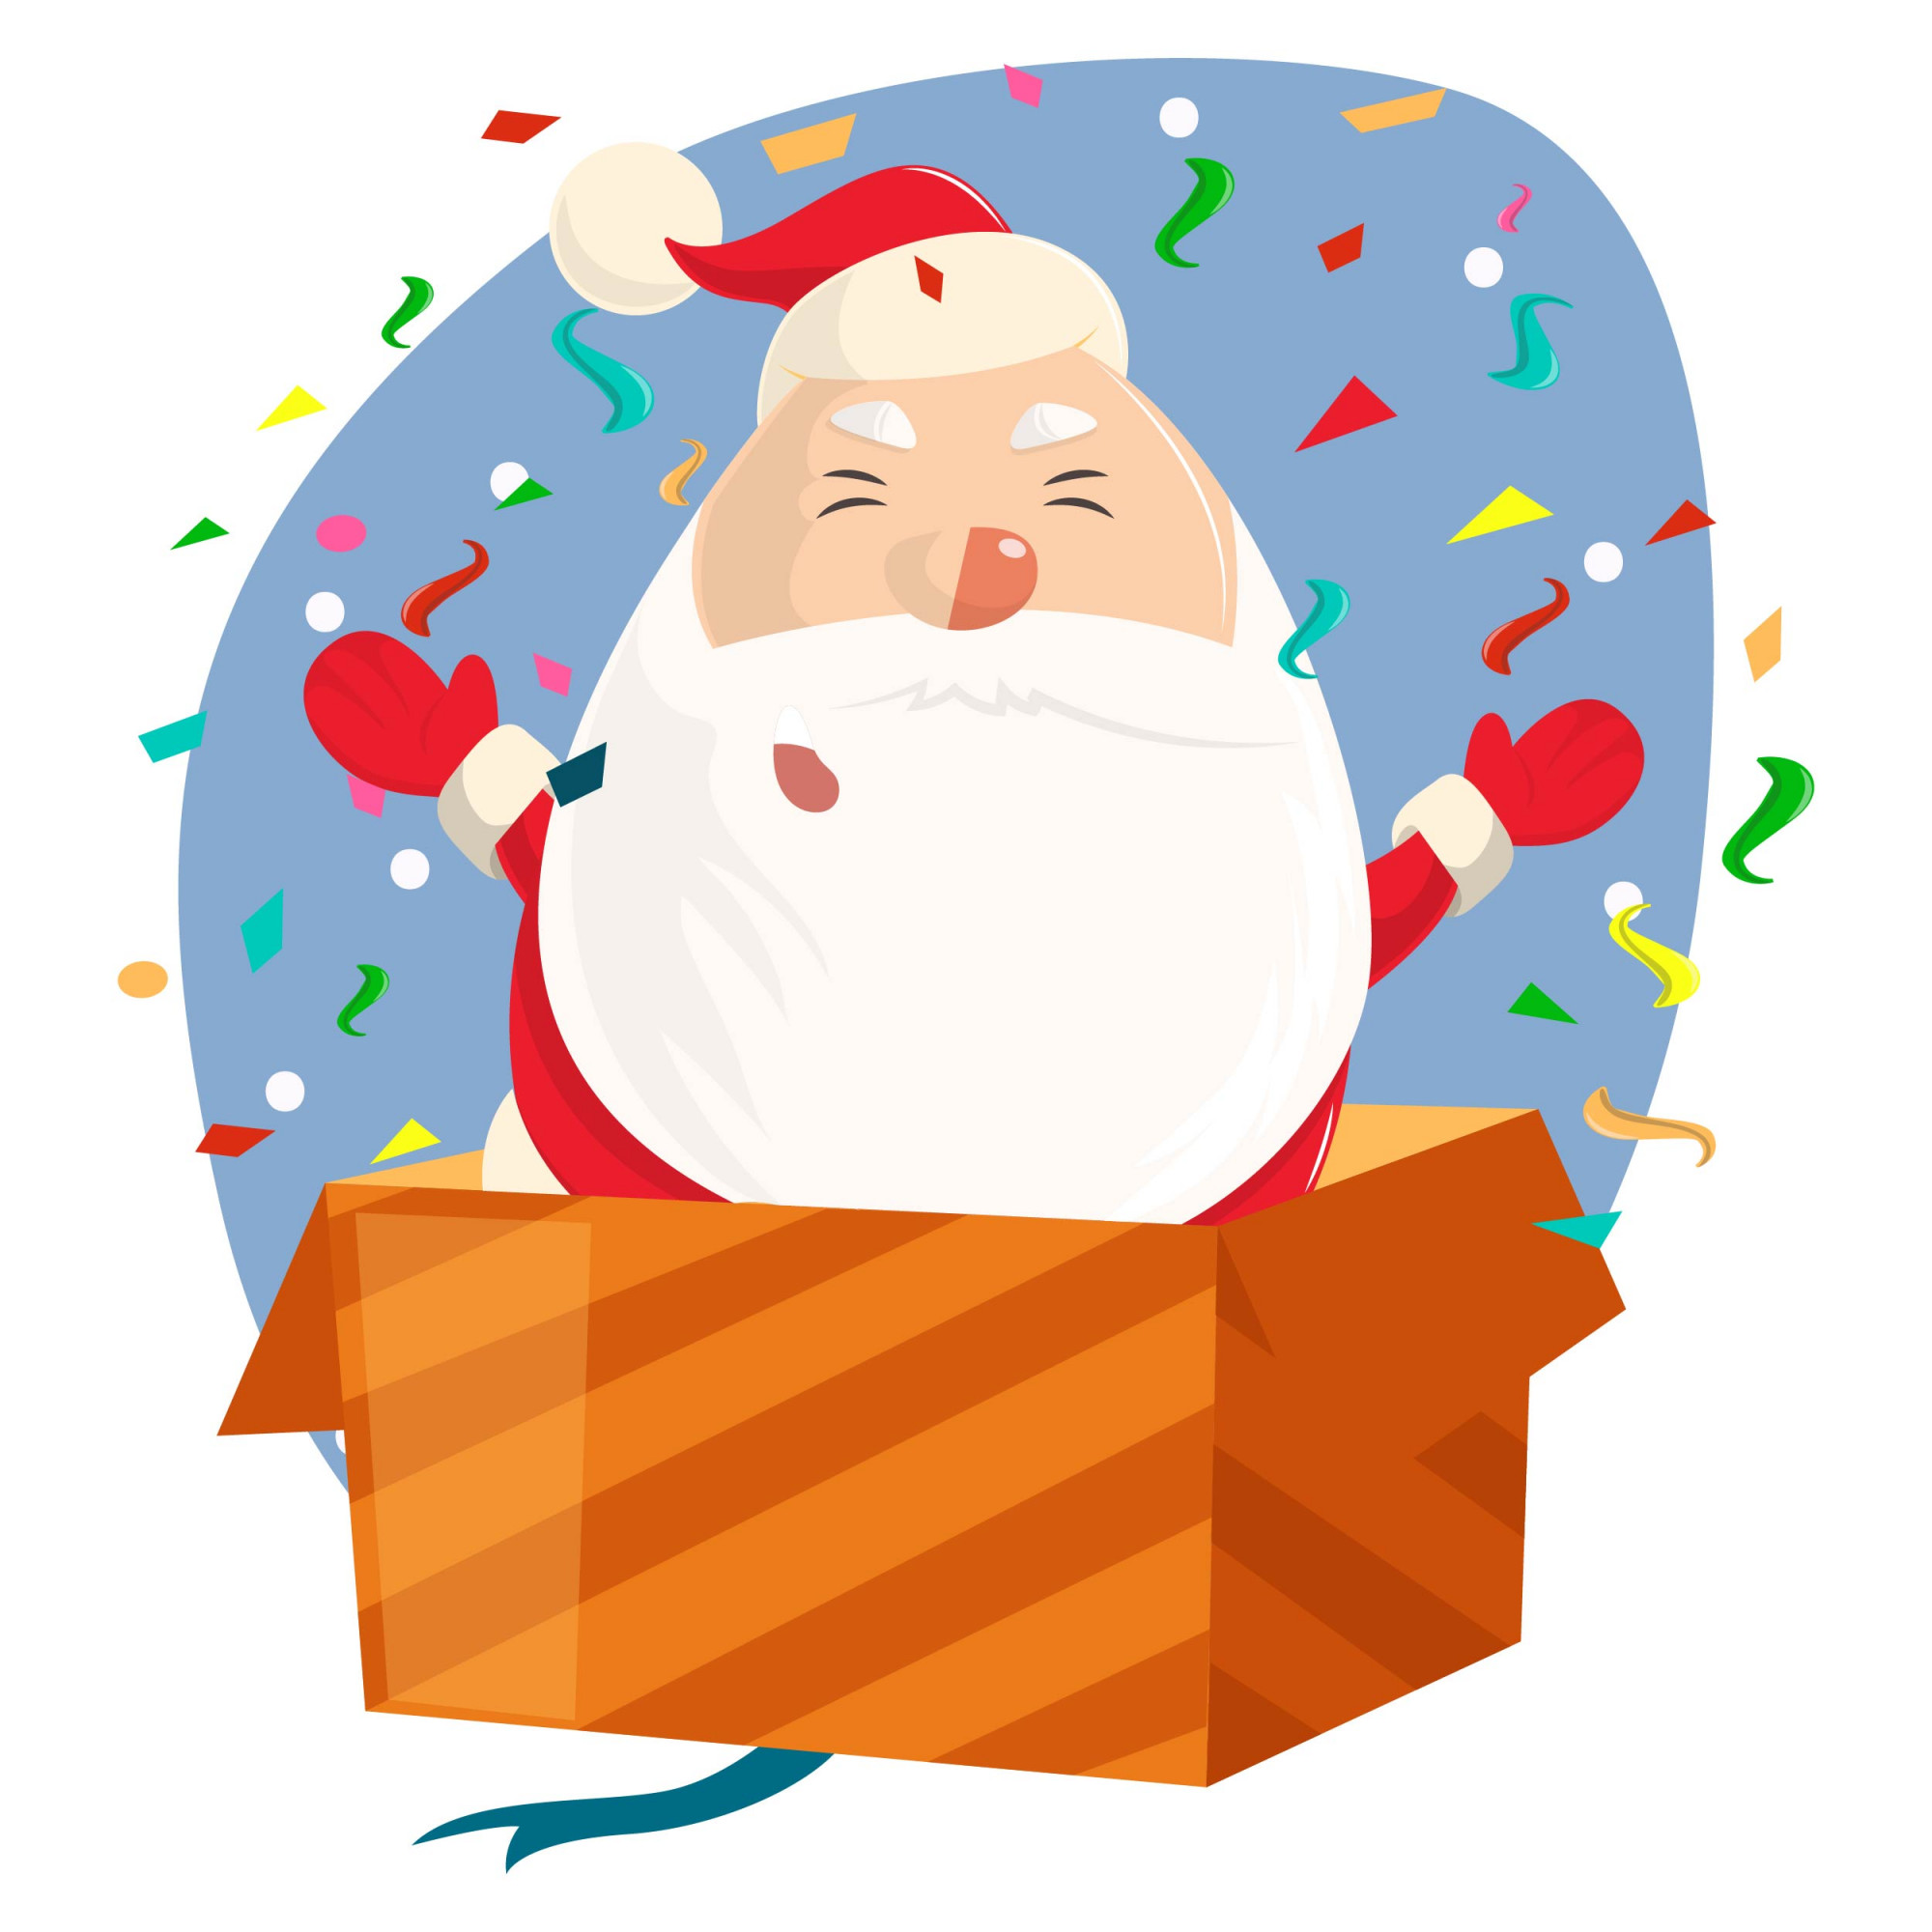 Cute Santa with opened hands standing in gift box.